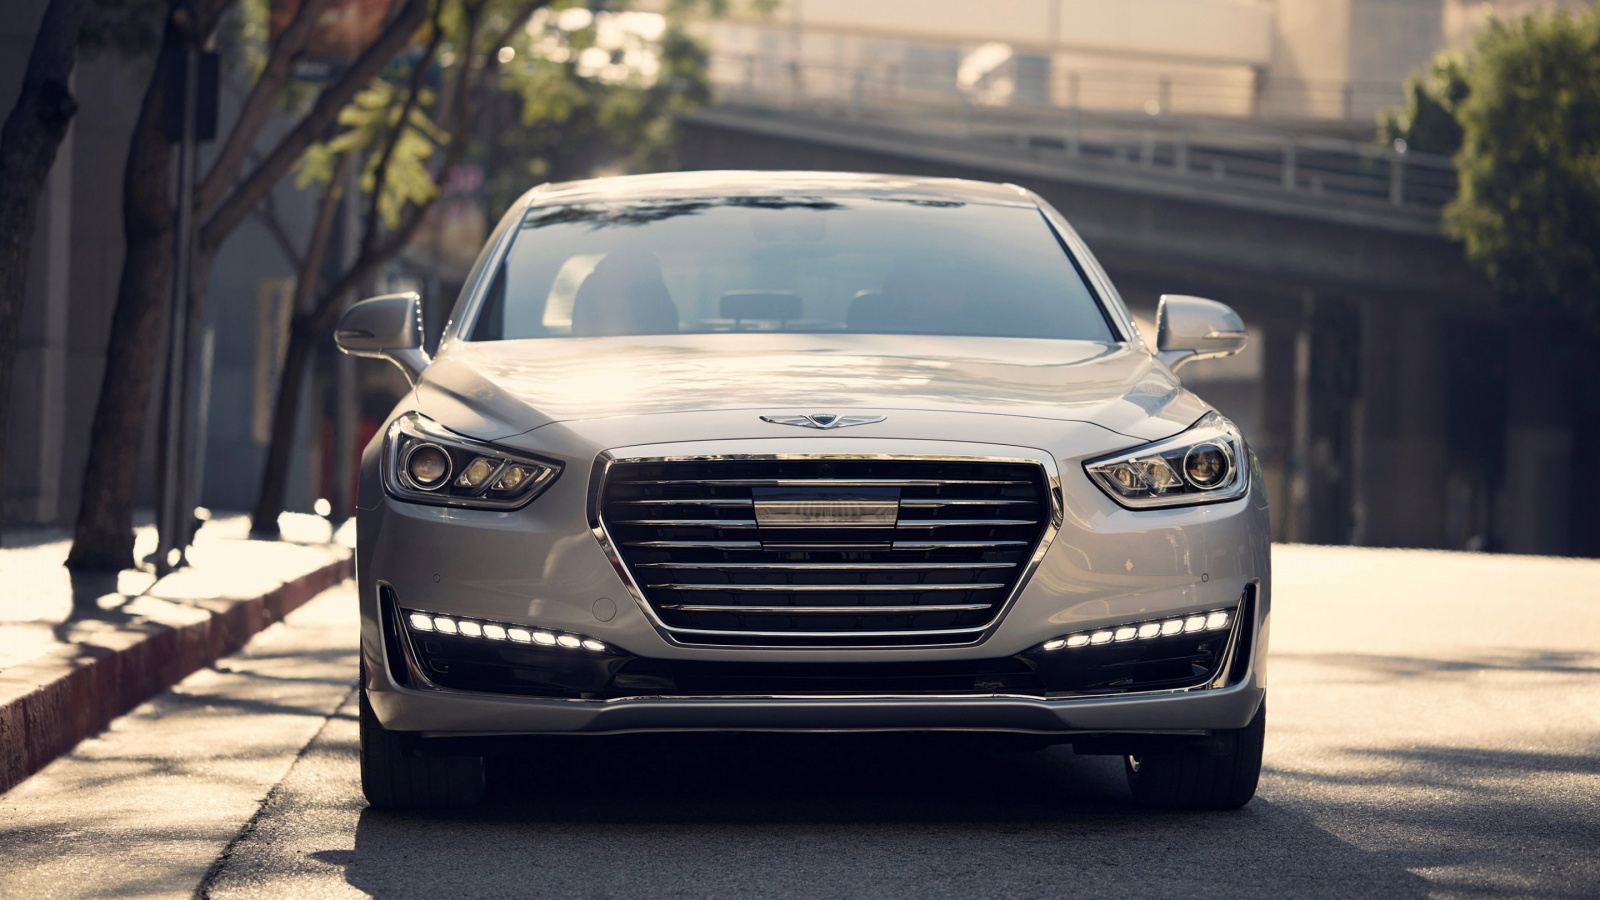 hyundai genesis g90 2017 wallpapers 1600x900 388485. Black Bedroom Furniture Sets. Home Design Ideas